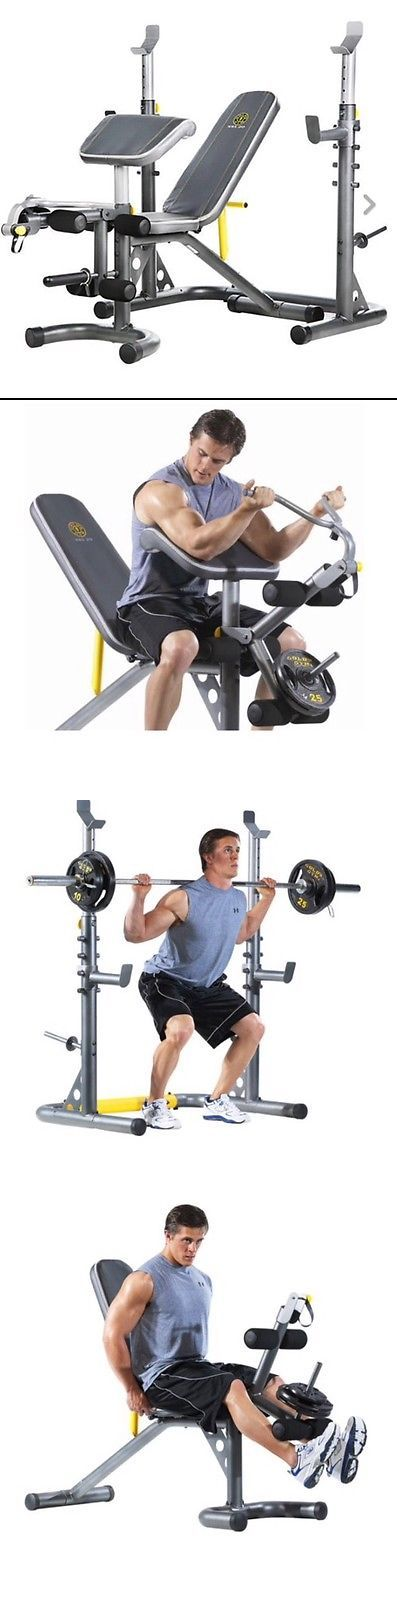 Benches 15281: Golds Gym Xrs 20 Olympic Utility Bench Weight Home Gym Total Body Workout Set -> BUY IT NOW ONLY: $209.99 on eBay!